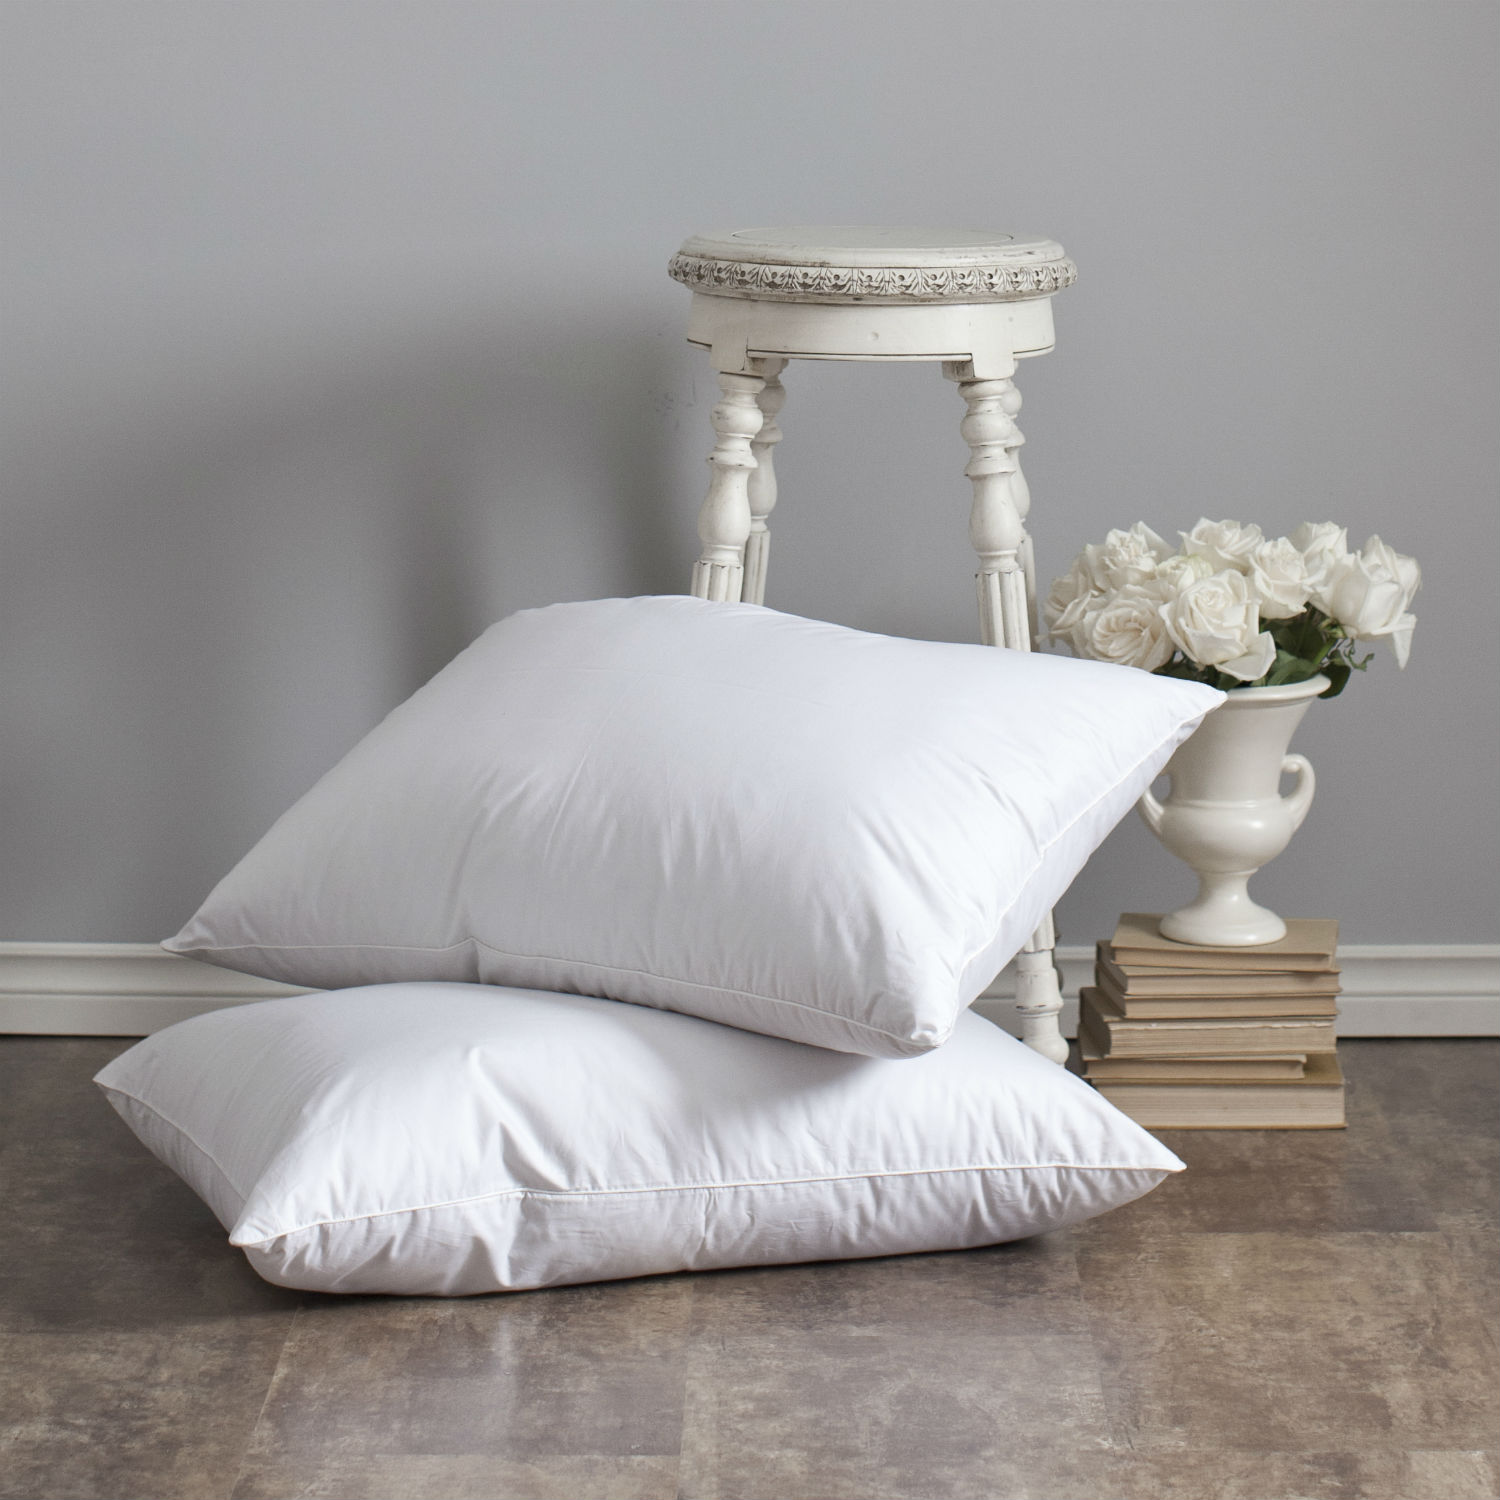 Heirloom White Goose Down Sleeping Pillow By St Geneve